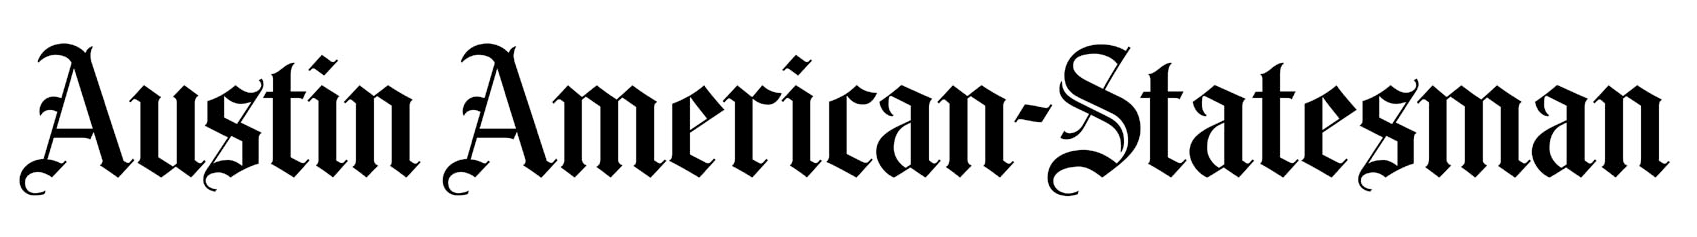 Austin American-Statesman obituaries and death notices and Death Notices for Austin Texas area. Explore Life Stories, Offer Condolences & Send Flowers.